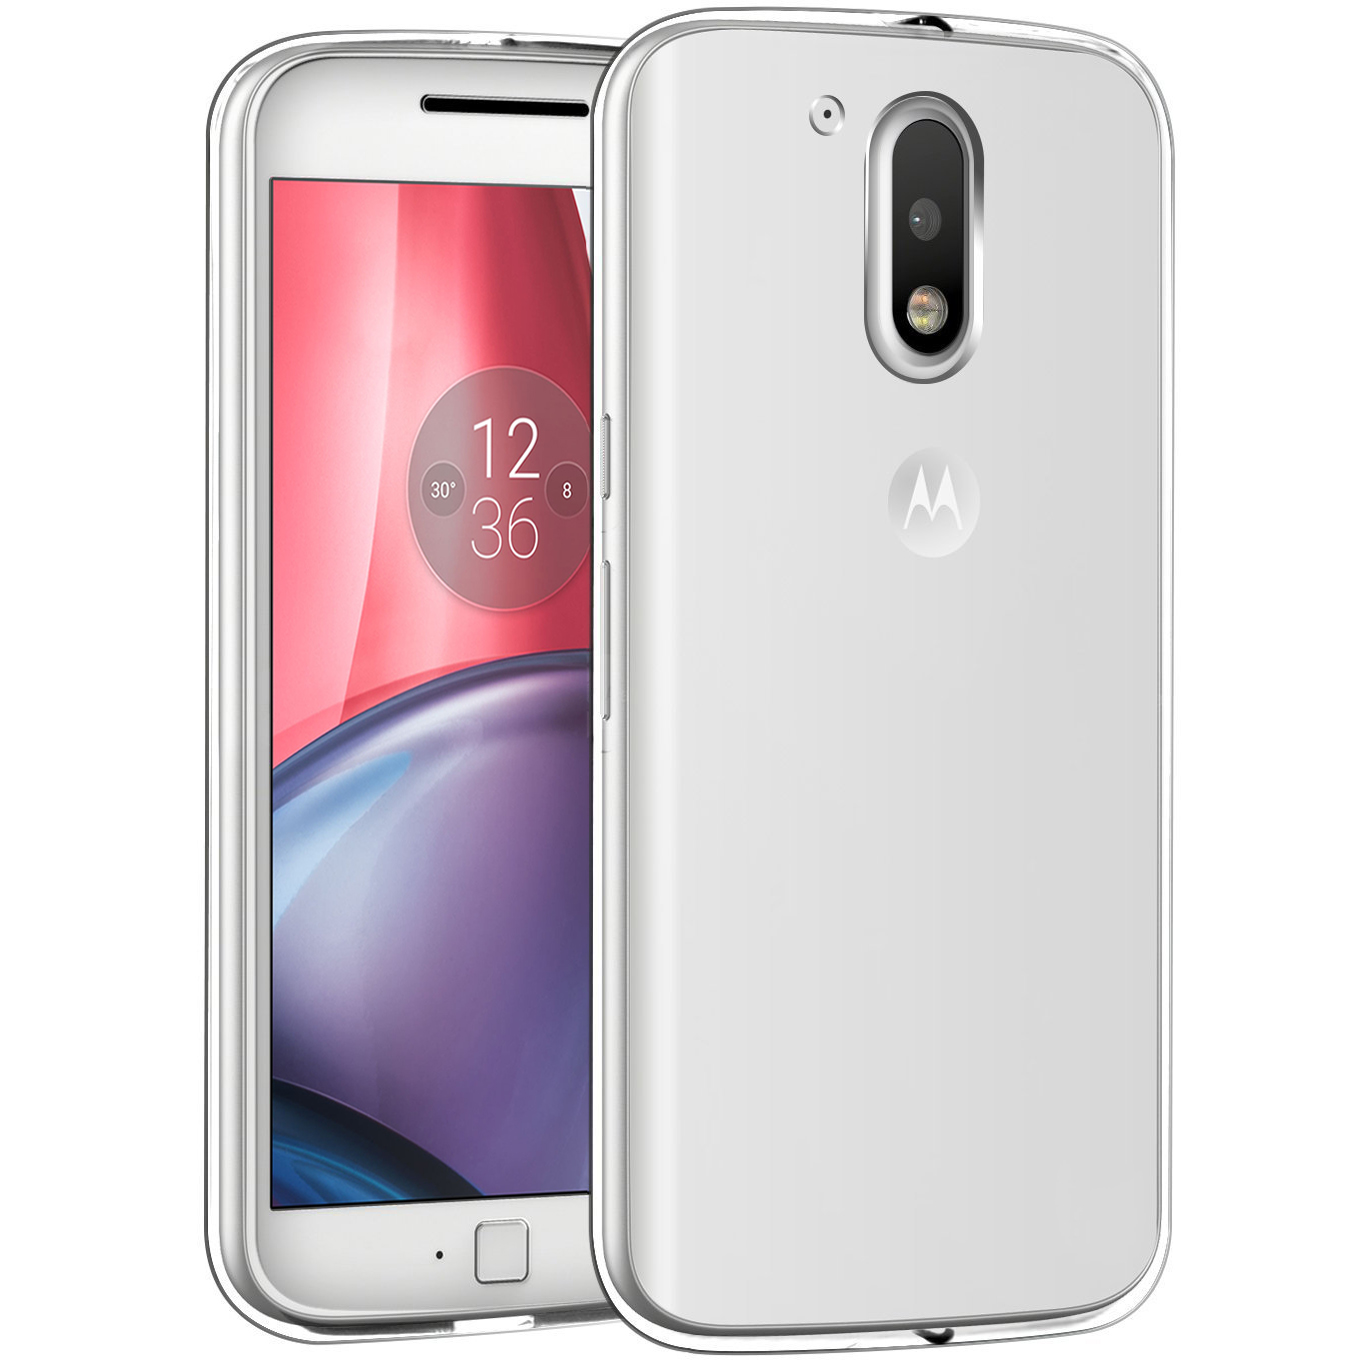 Motorola Moto G4 2016 (4th Gen.) Case, [Clear] Slim & Flexible Anti-shock Crystal Silicone Protective TPU Gel Skin Case Cover with Travel Wallet Phone Stand